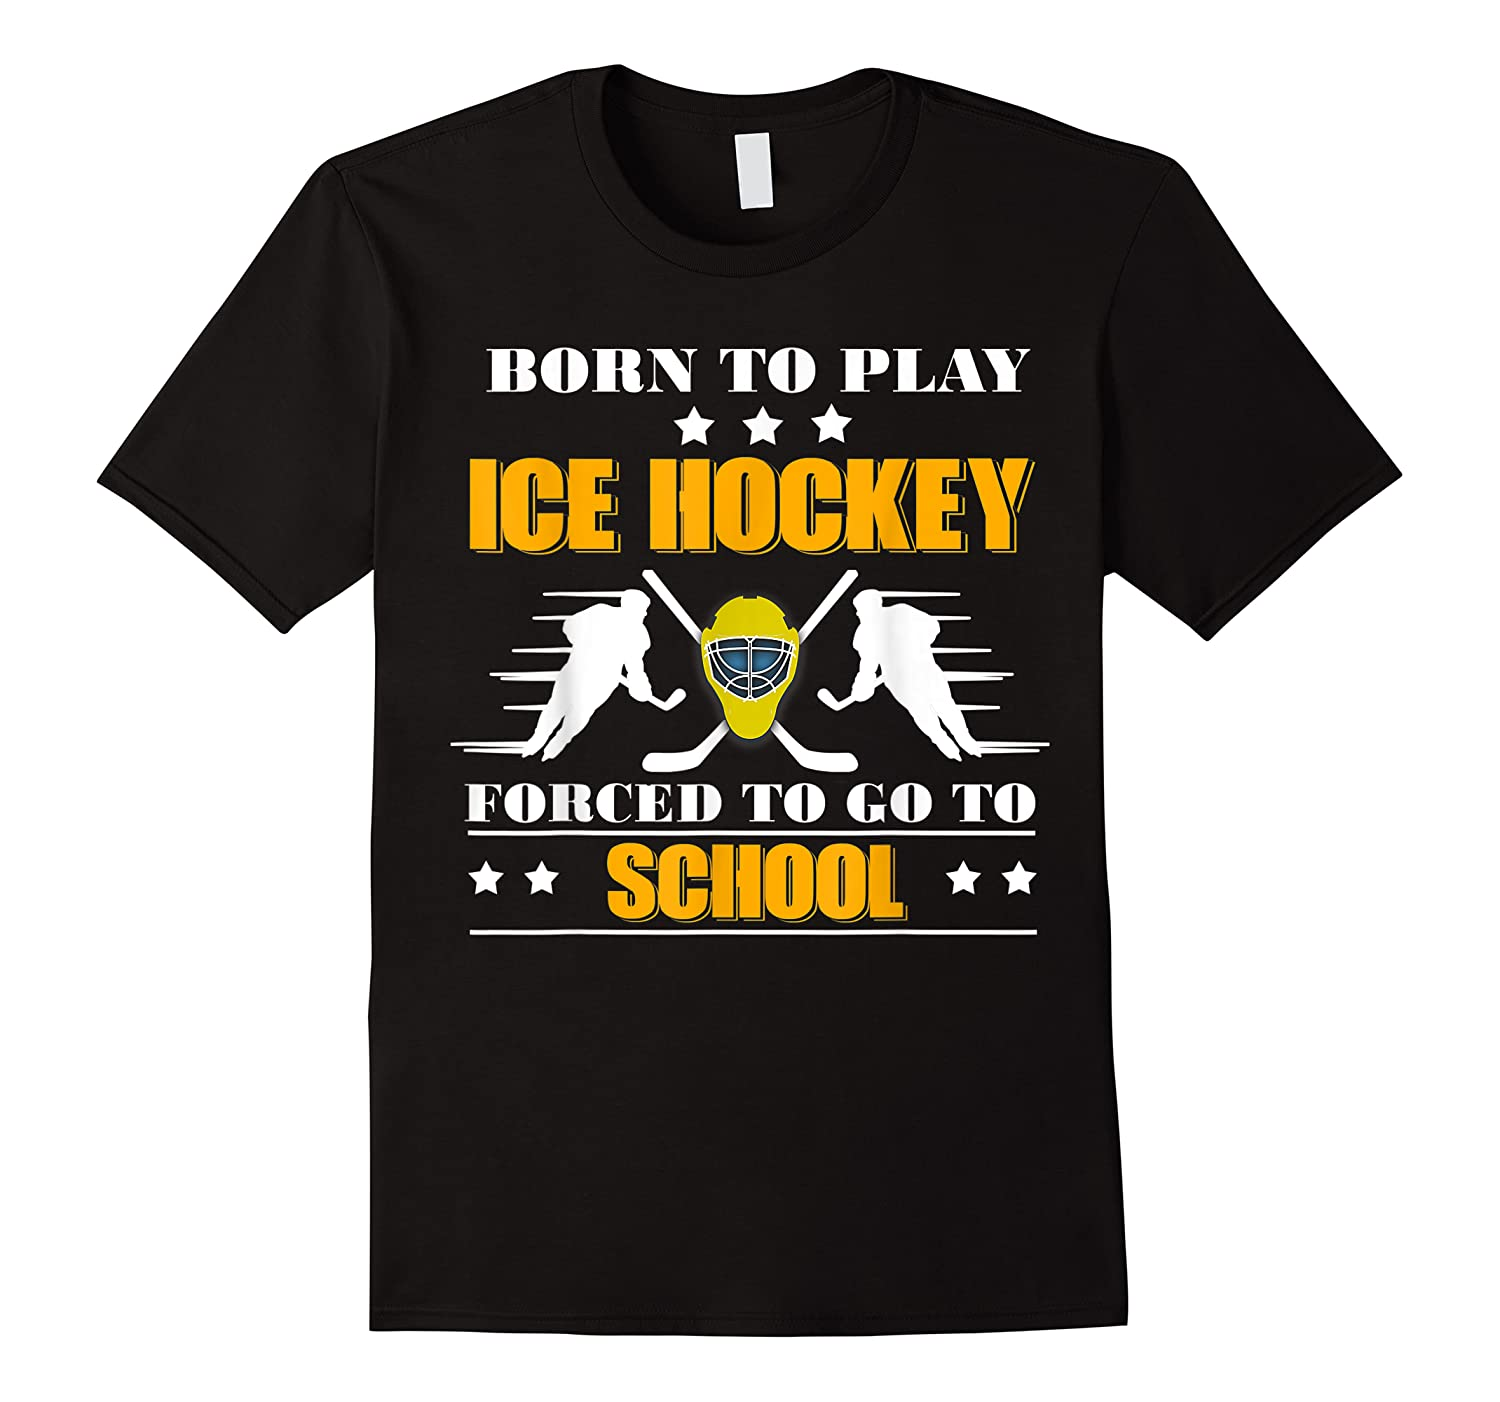 Born To Play Ice Hockey Forced To Go To School T-shirt